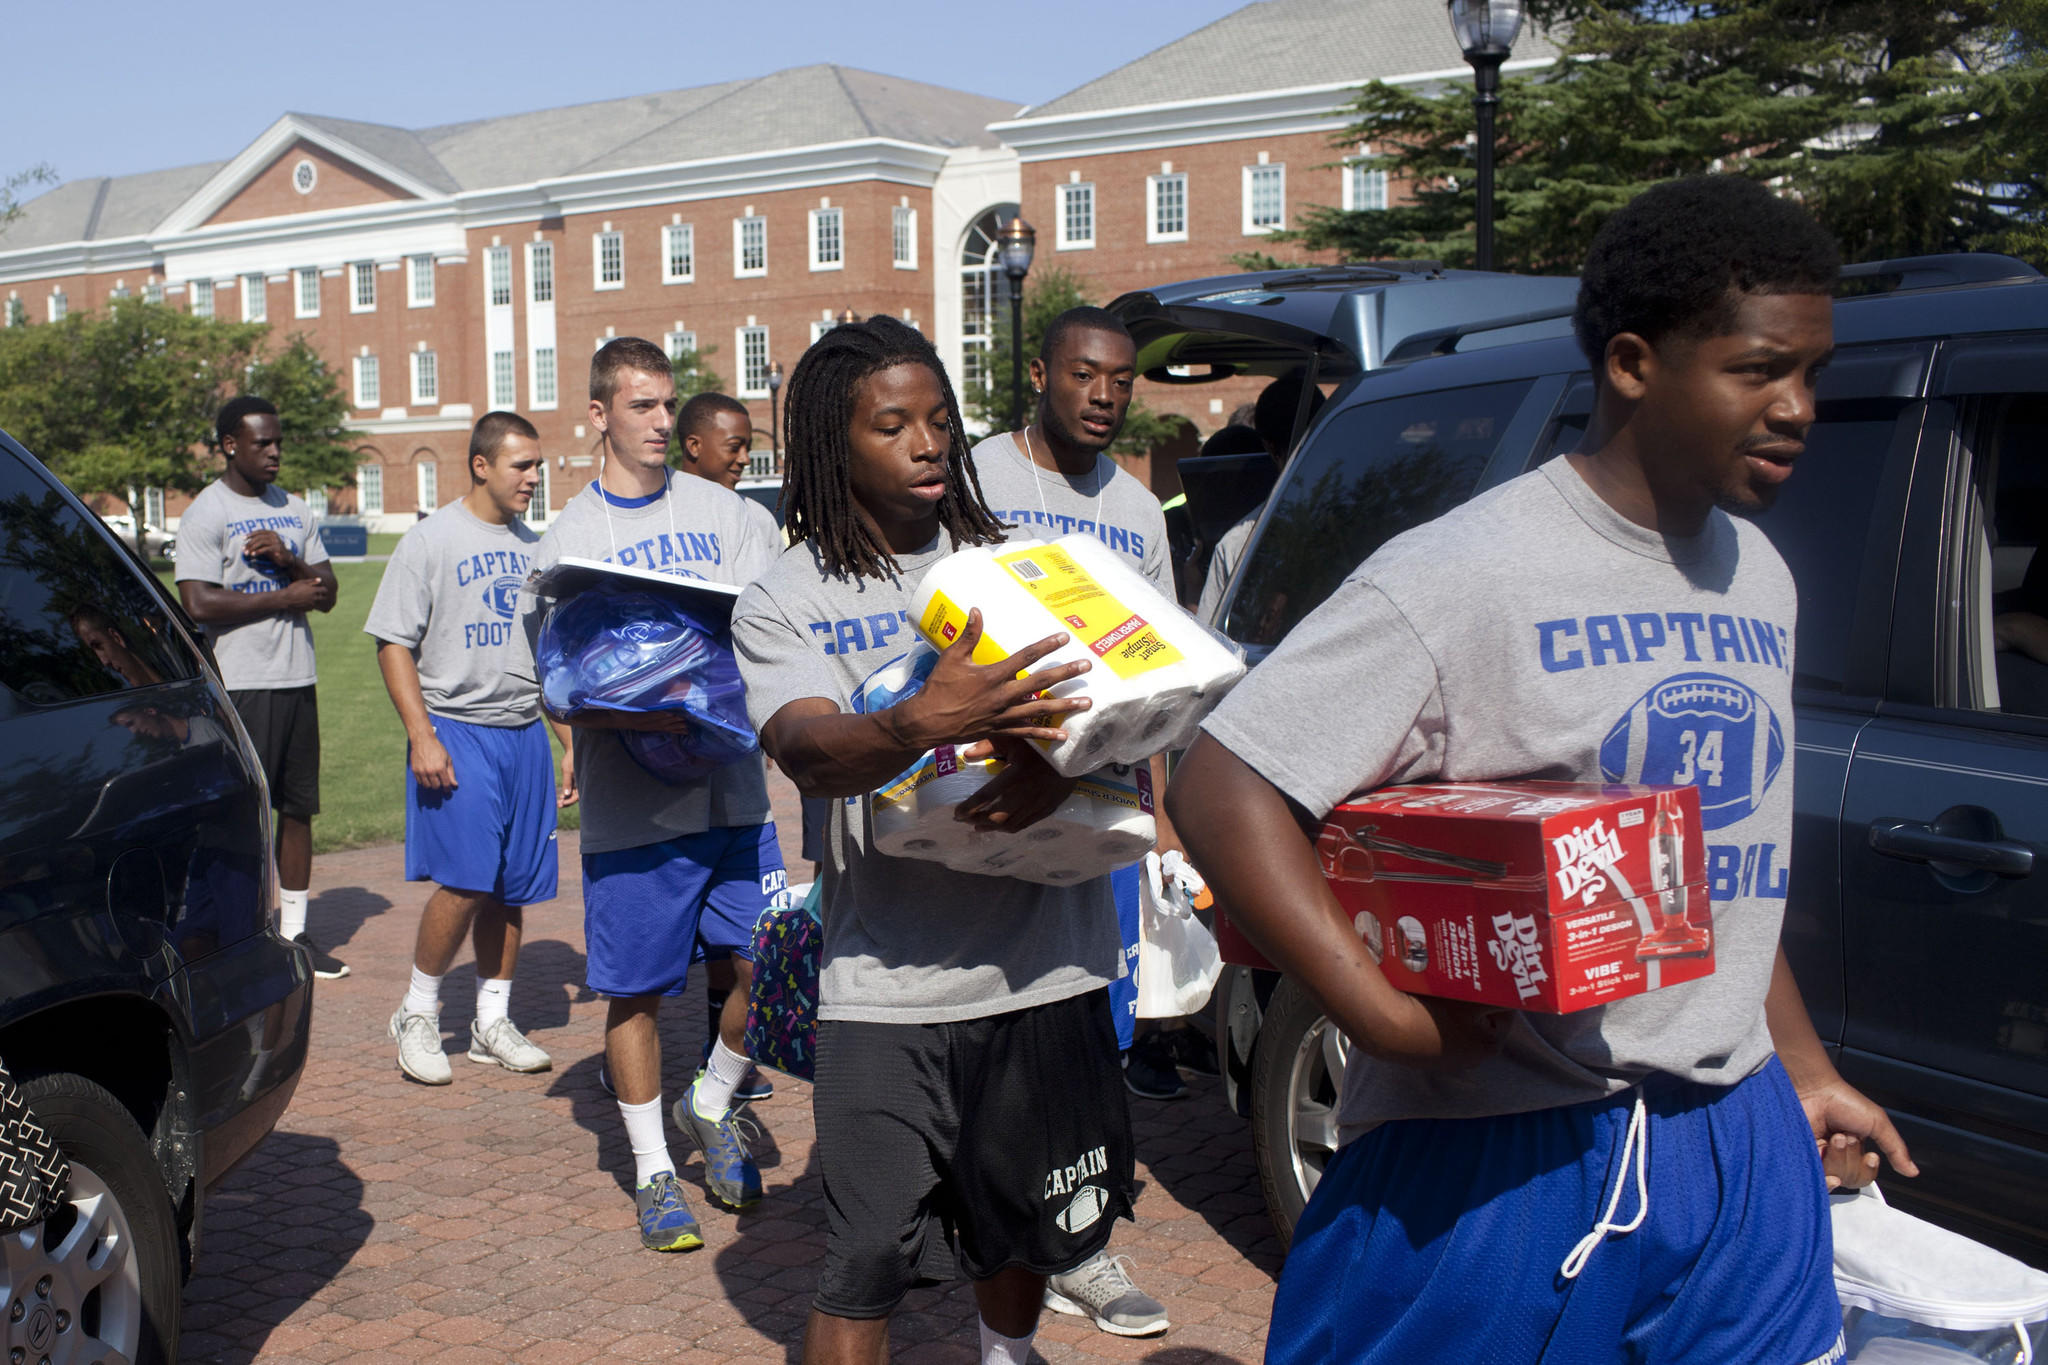 Student athletes help freshmen move in to the dorms at Christopher Newport University on August 16, 2014.